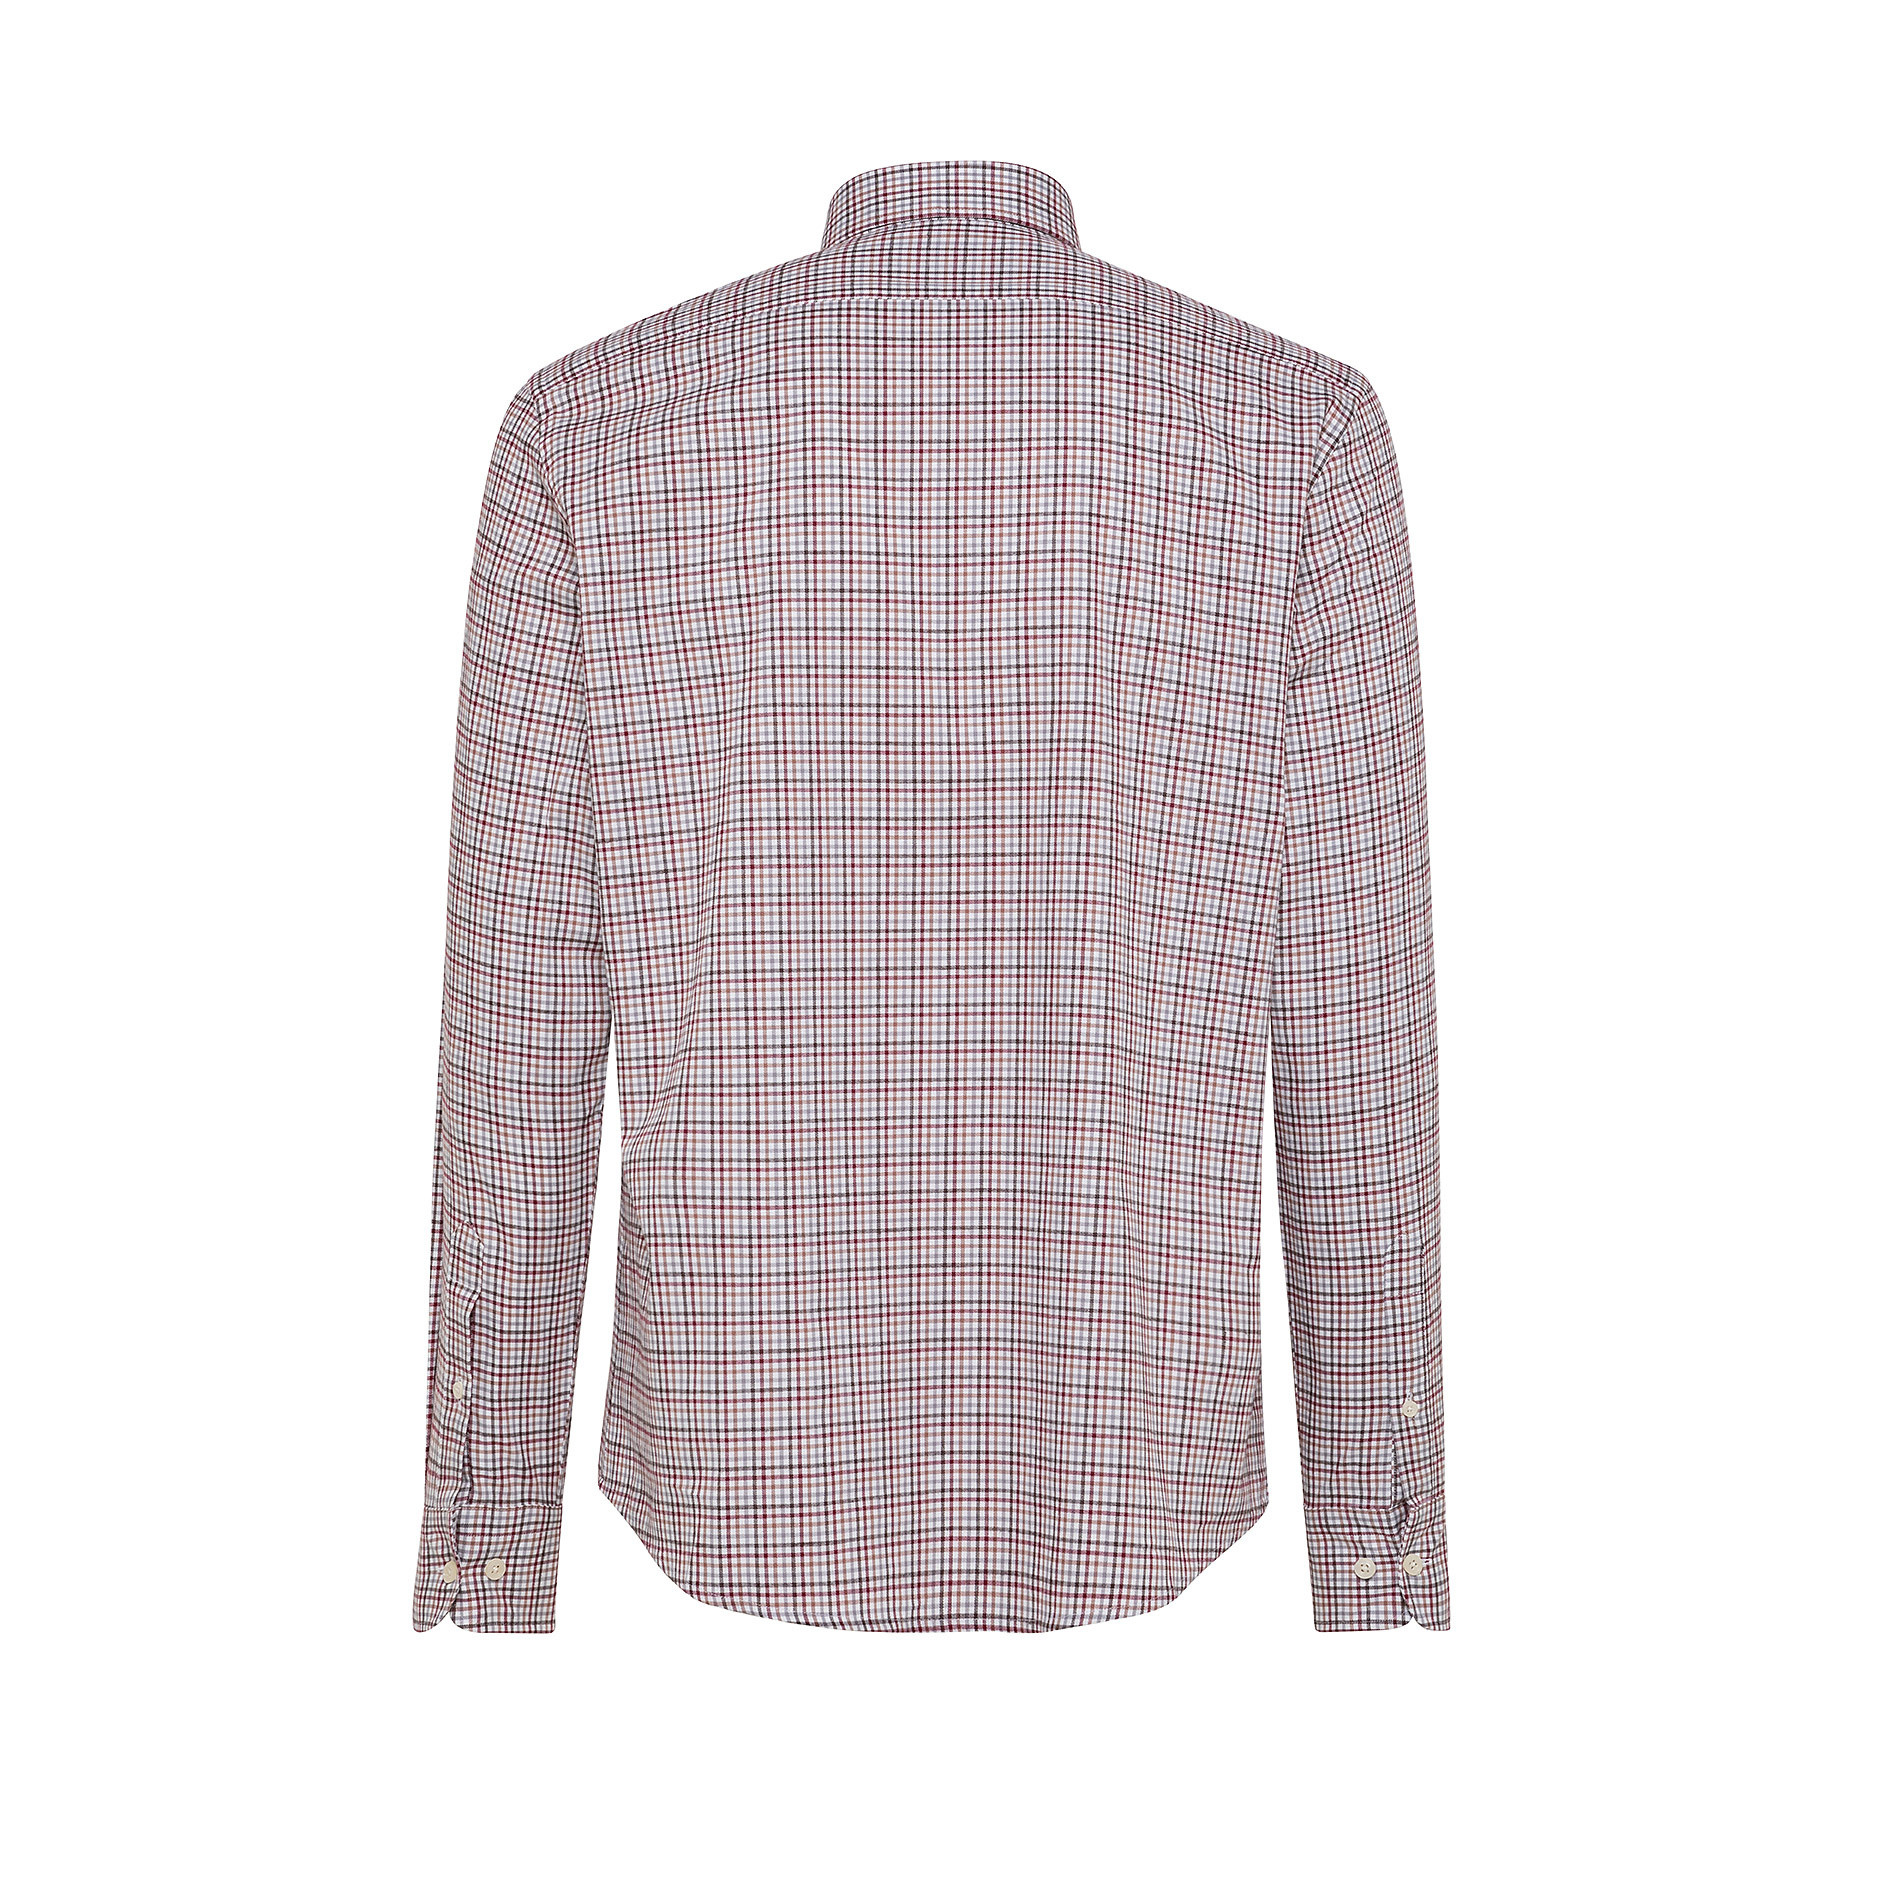 Camicia button-down tailor fit in cotone organico, Rosso scuro, large image number 1